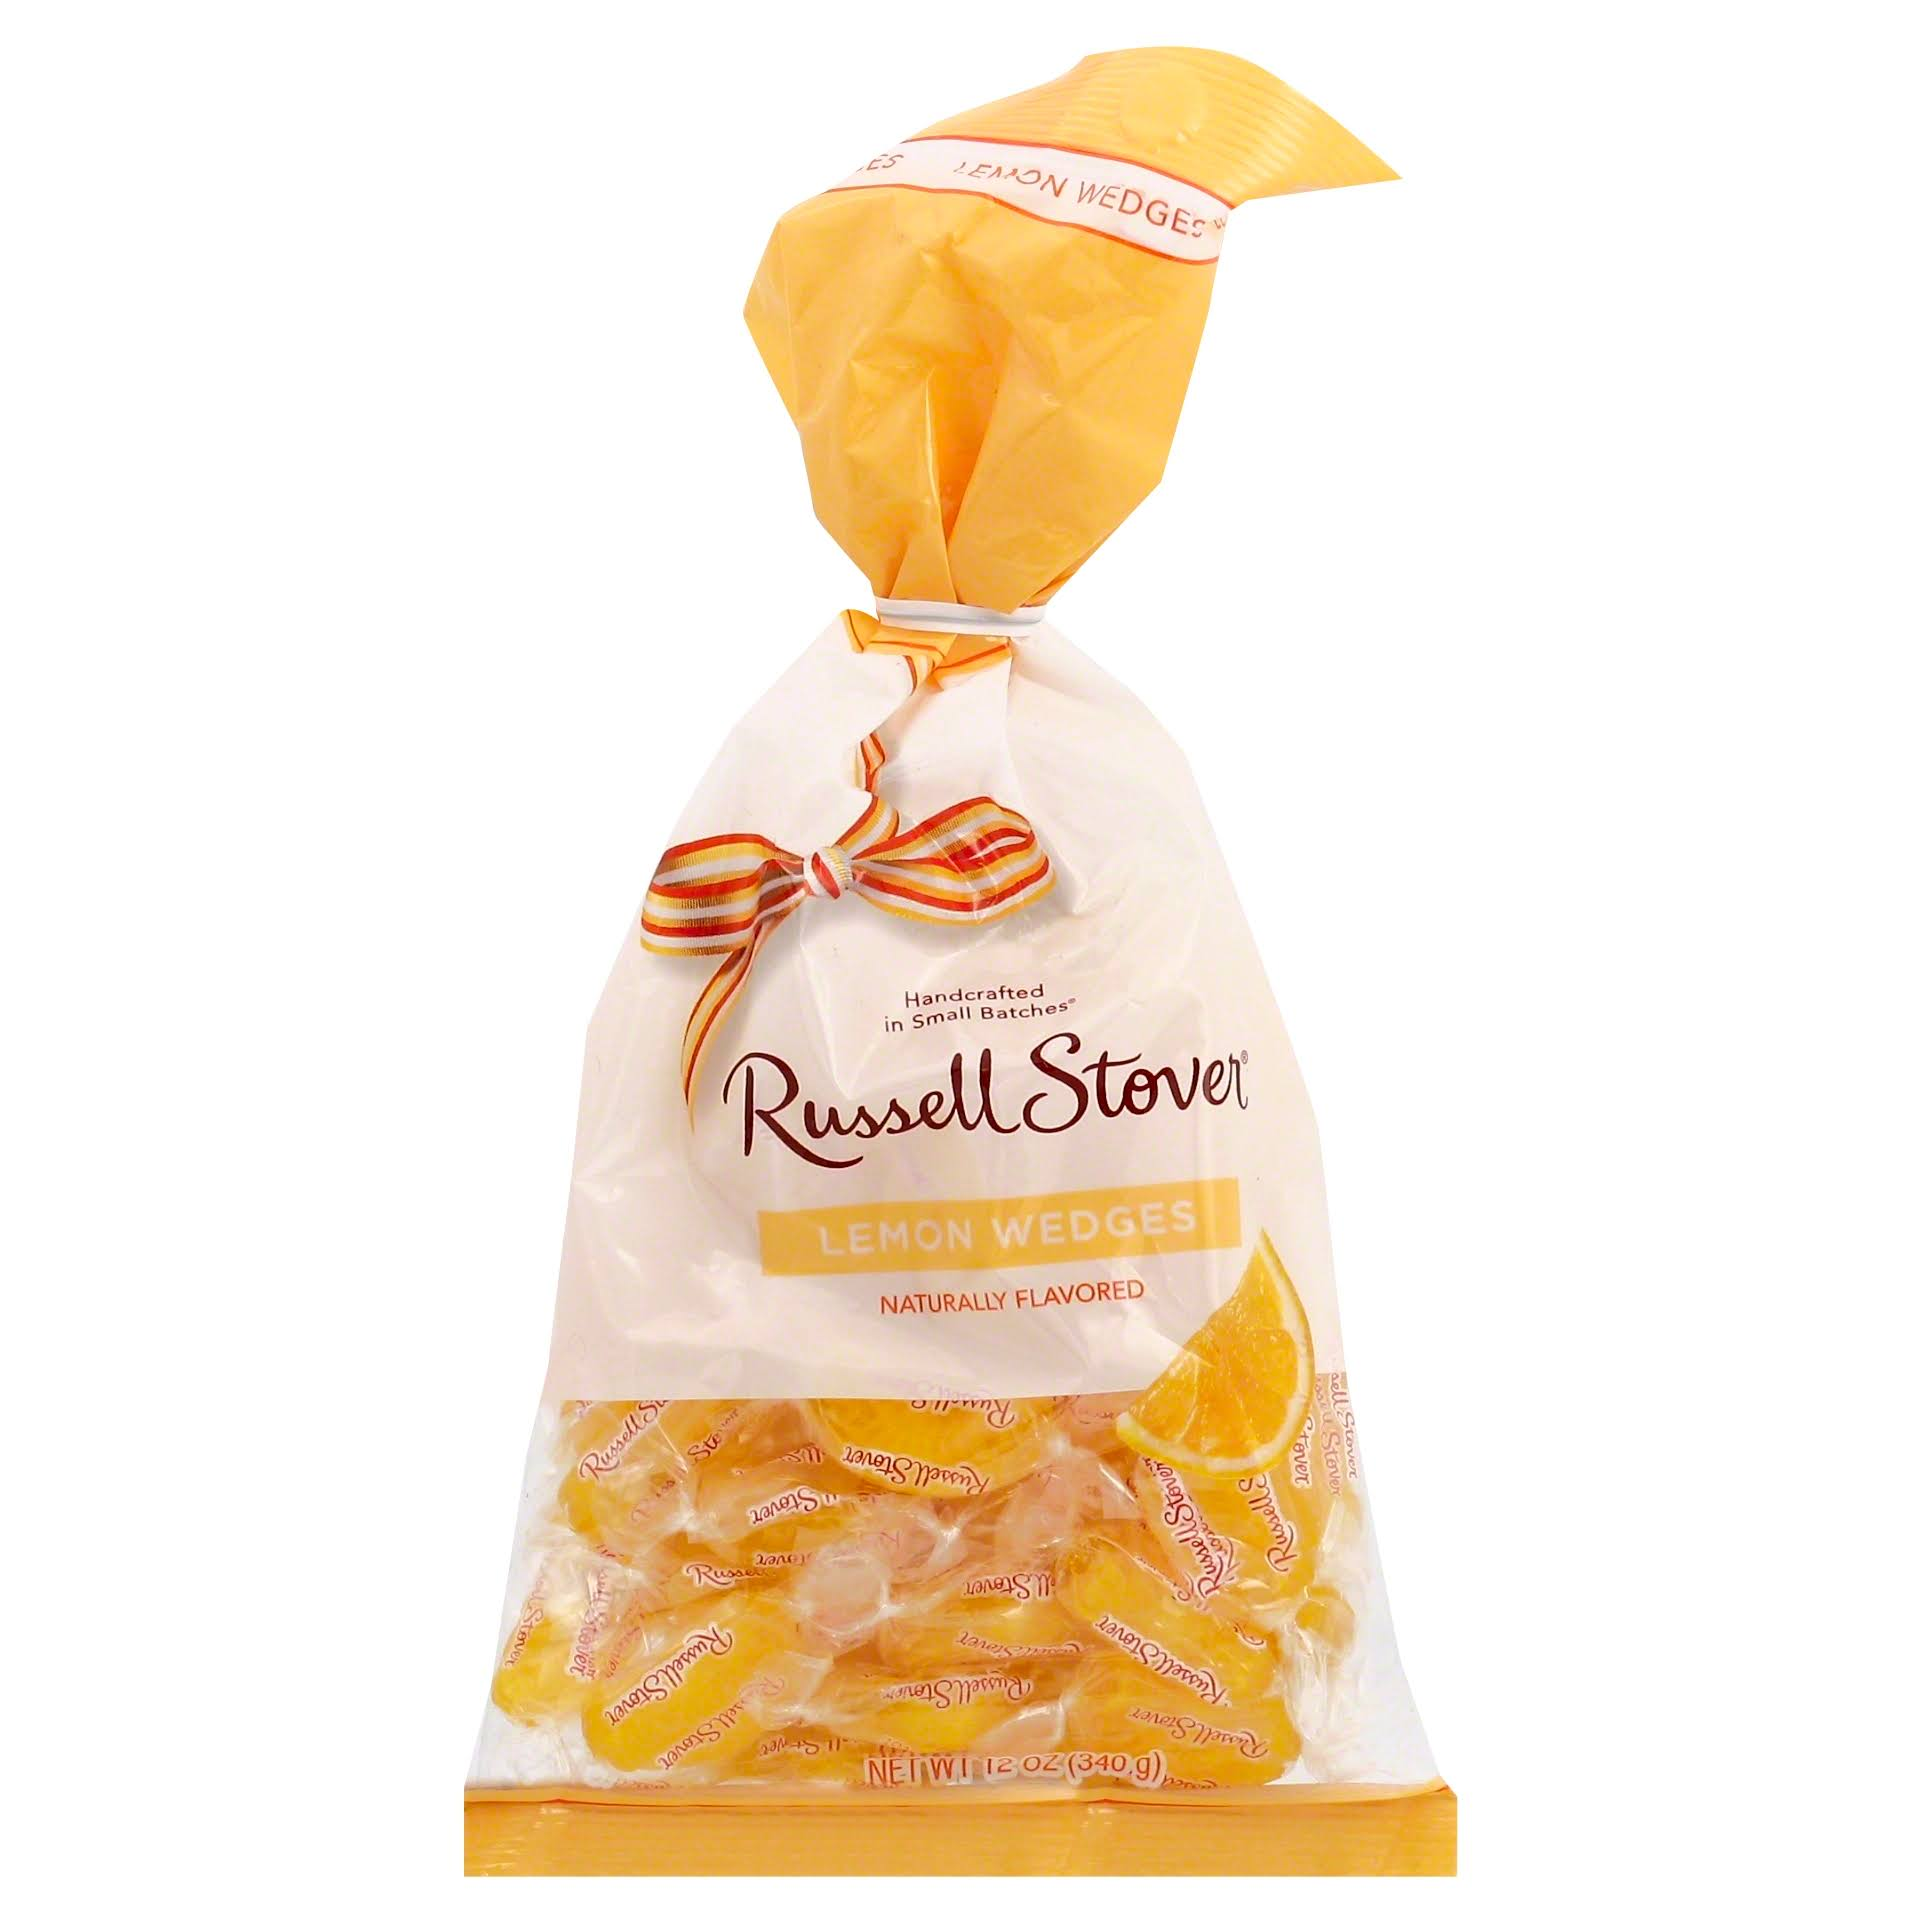 Russell Stover Hard Candies - Lemon Wedges, 12oz